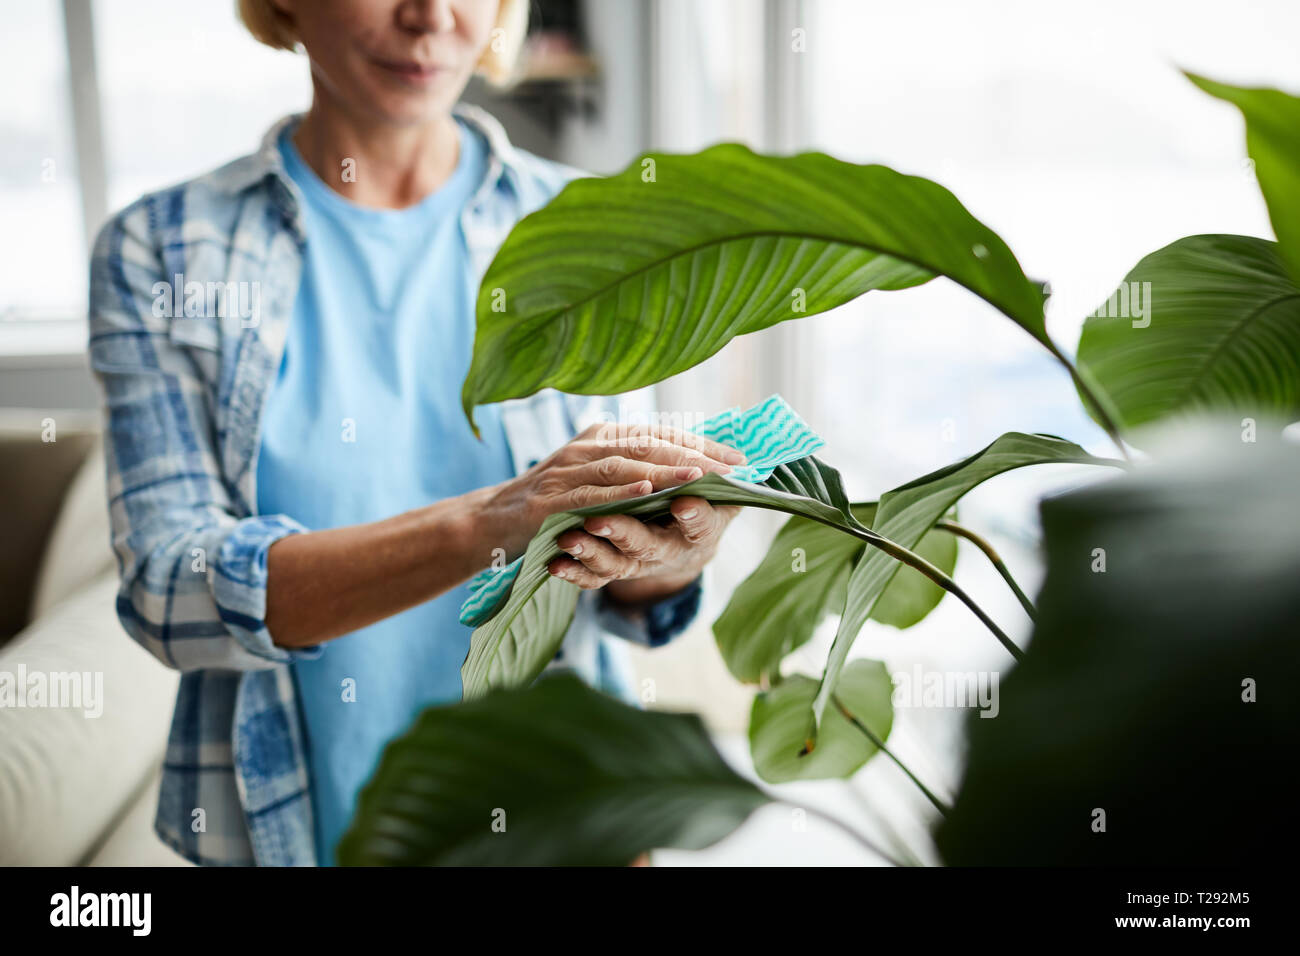 Cleaning leaves of houseplant Stock Photo